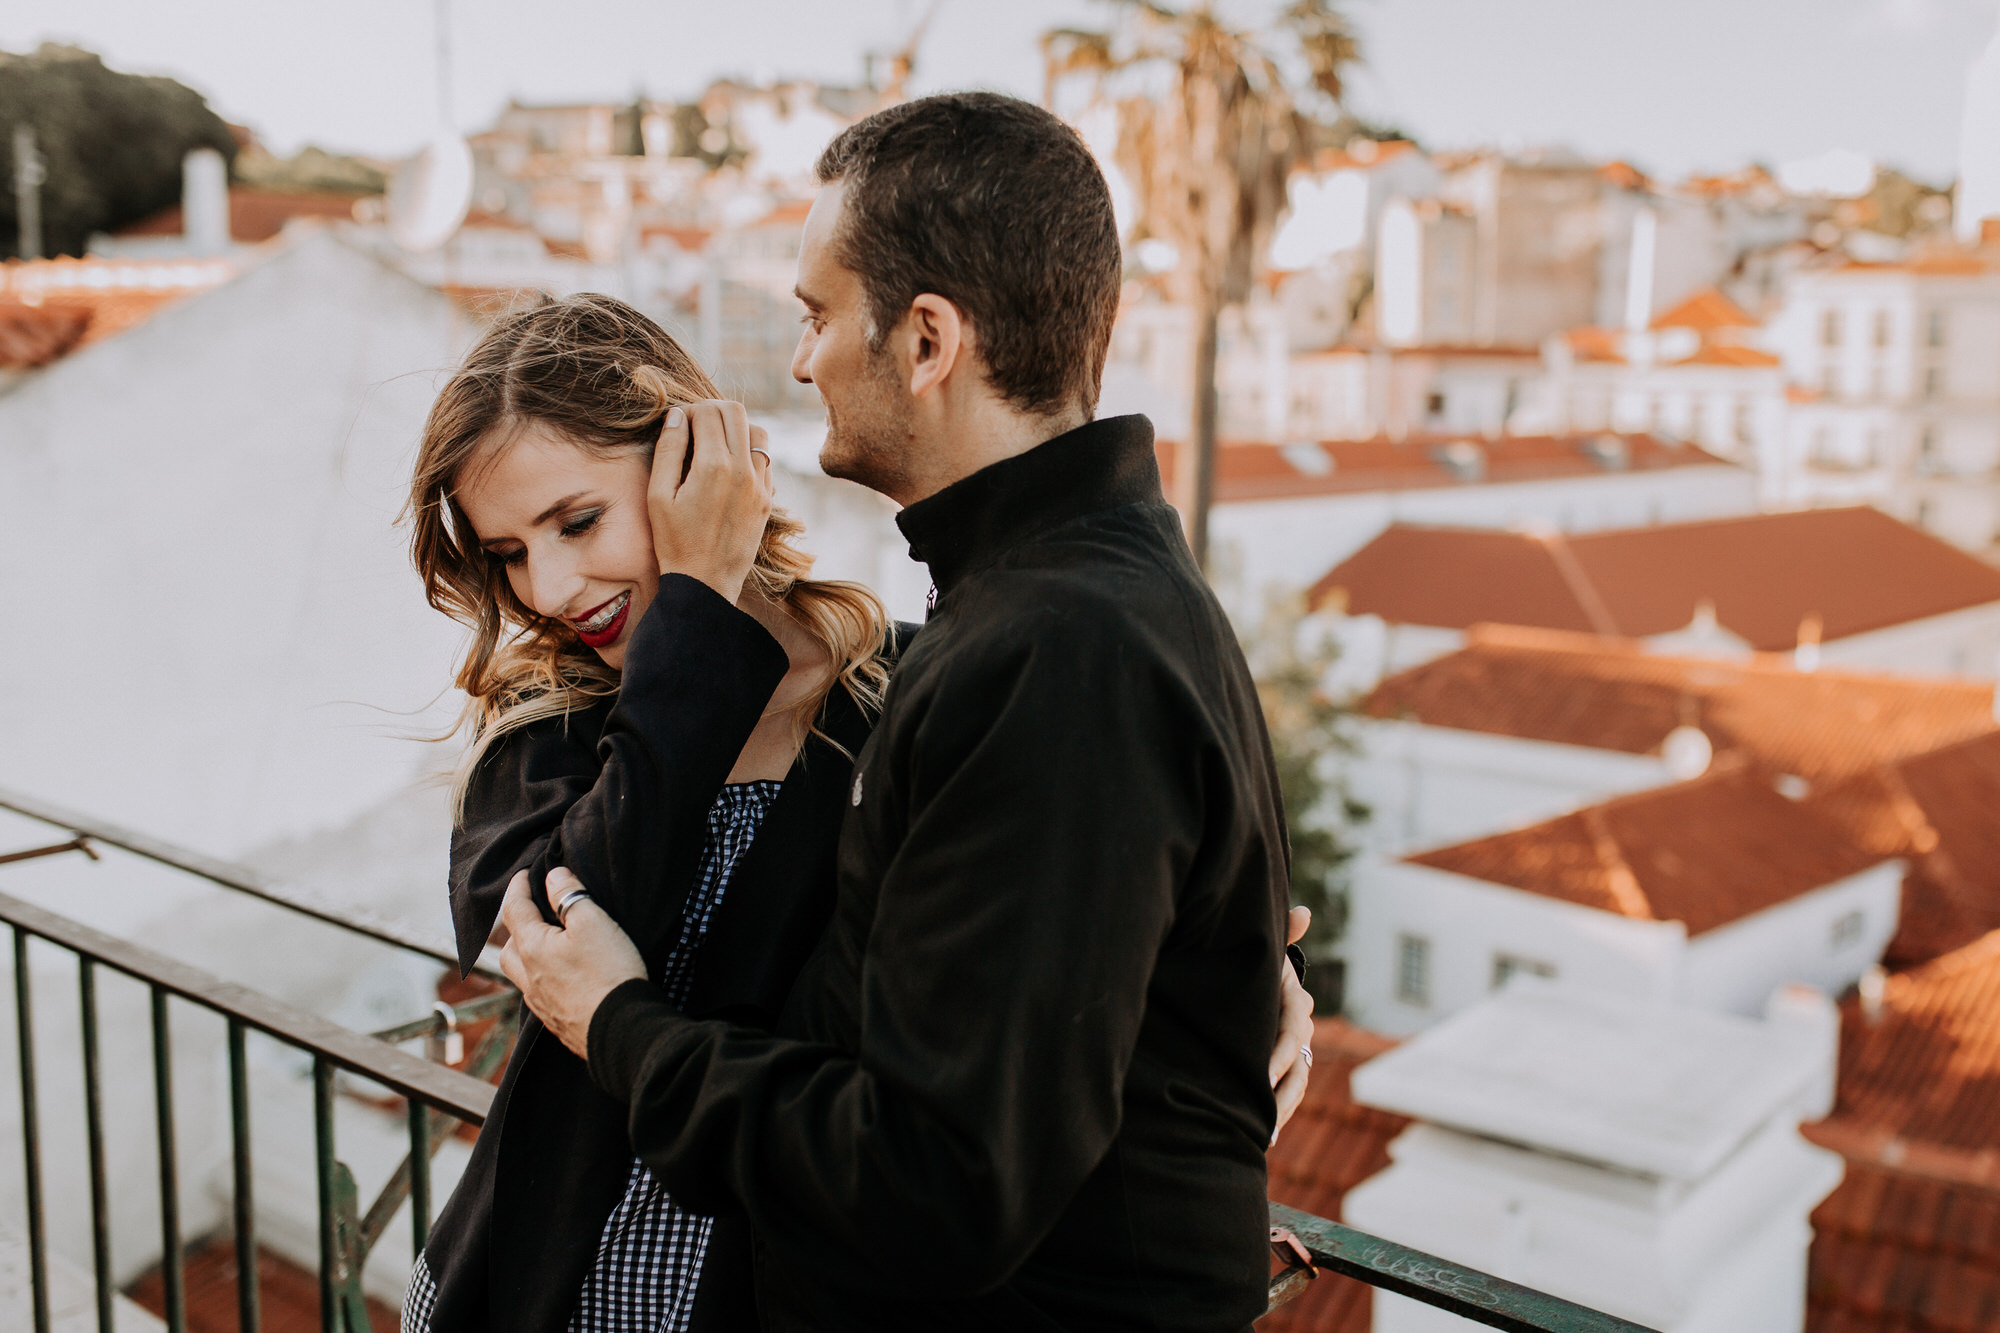 16 -sessao-noivado-engagement-session-alfama-lisboa-town-wedding-photography-photographer-natural-best-venue-planner-destination-filipe-santiago-fotografia